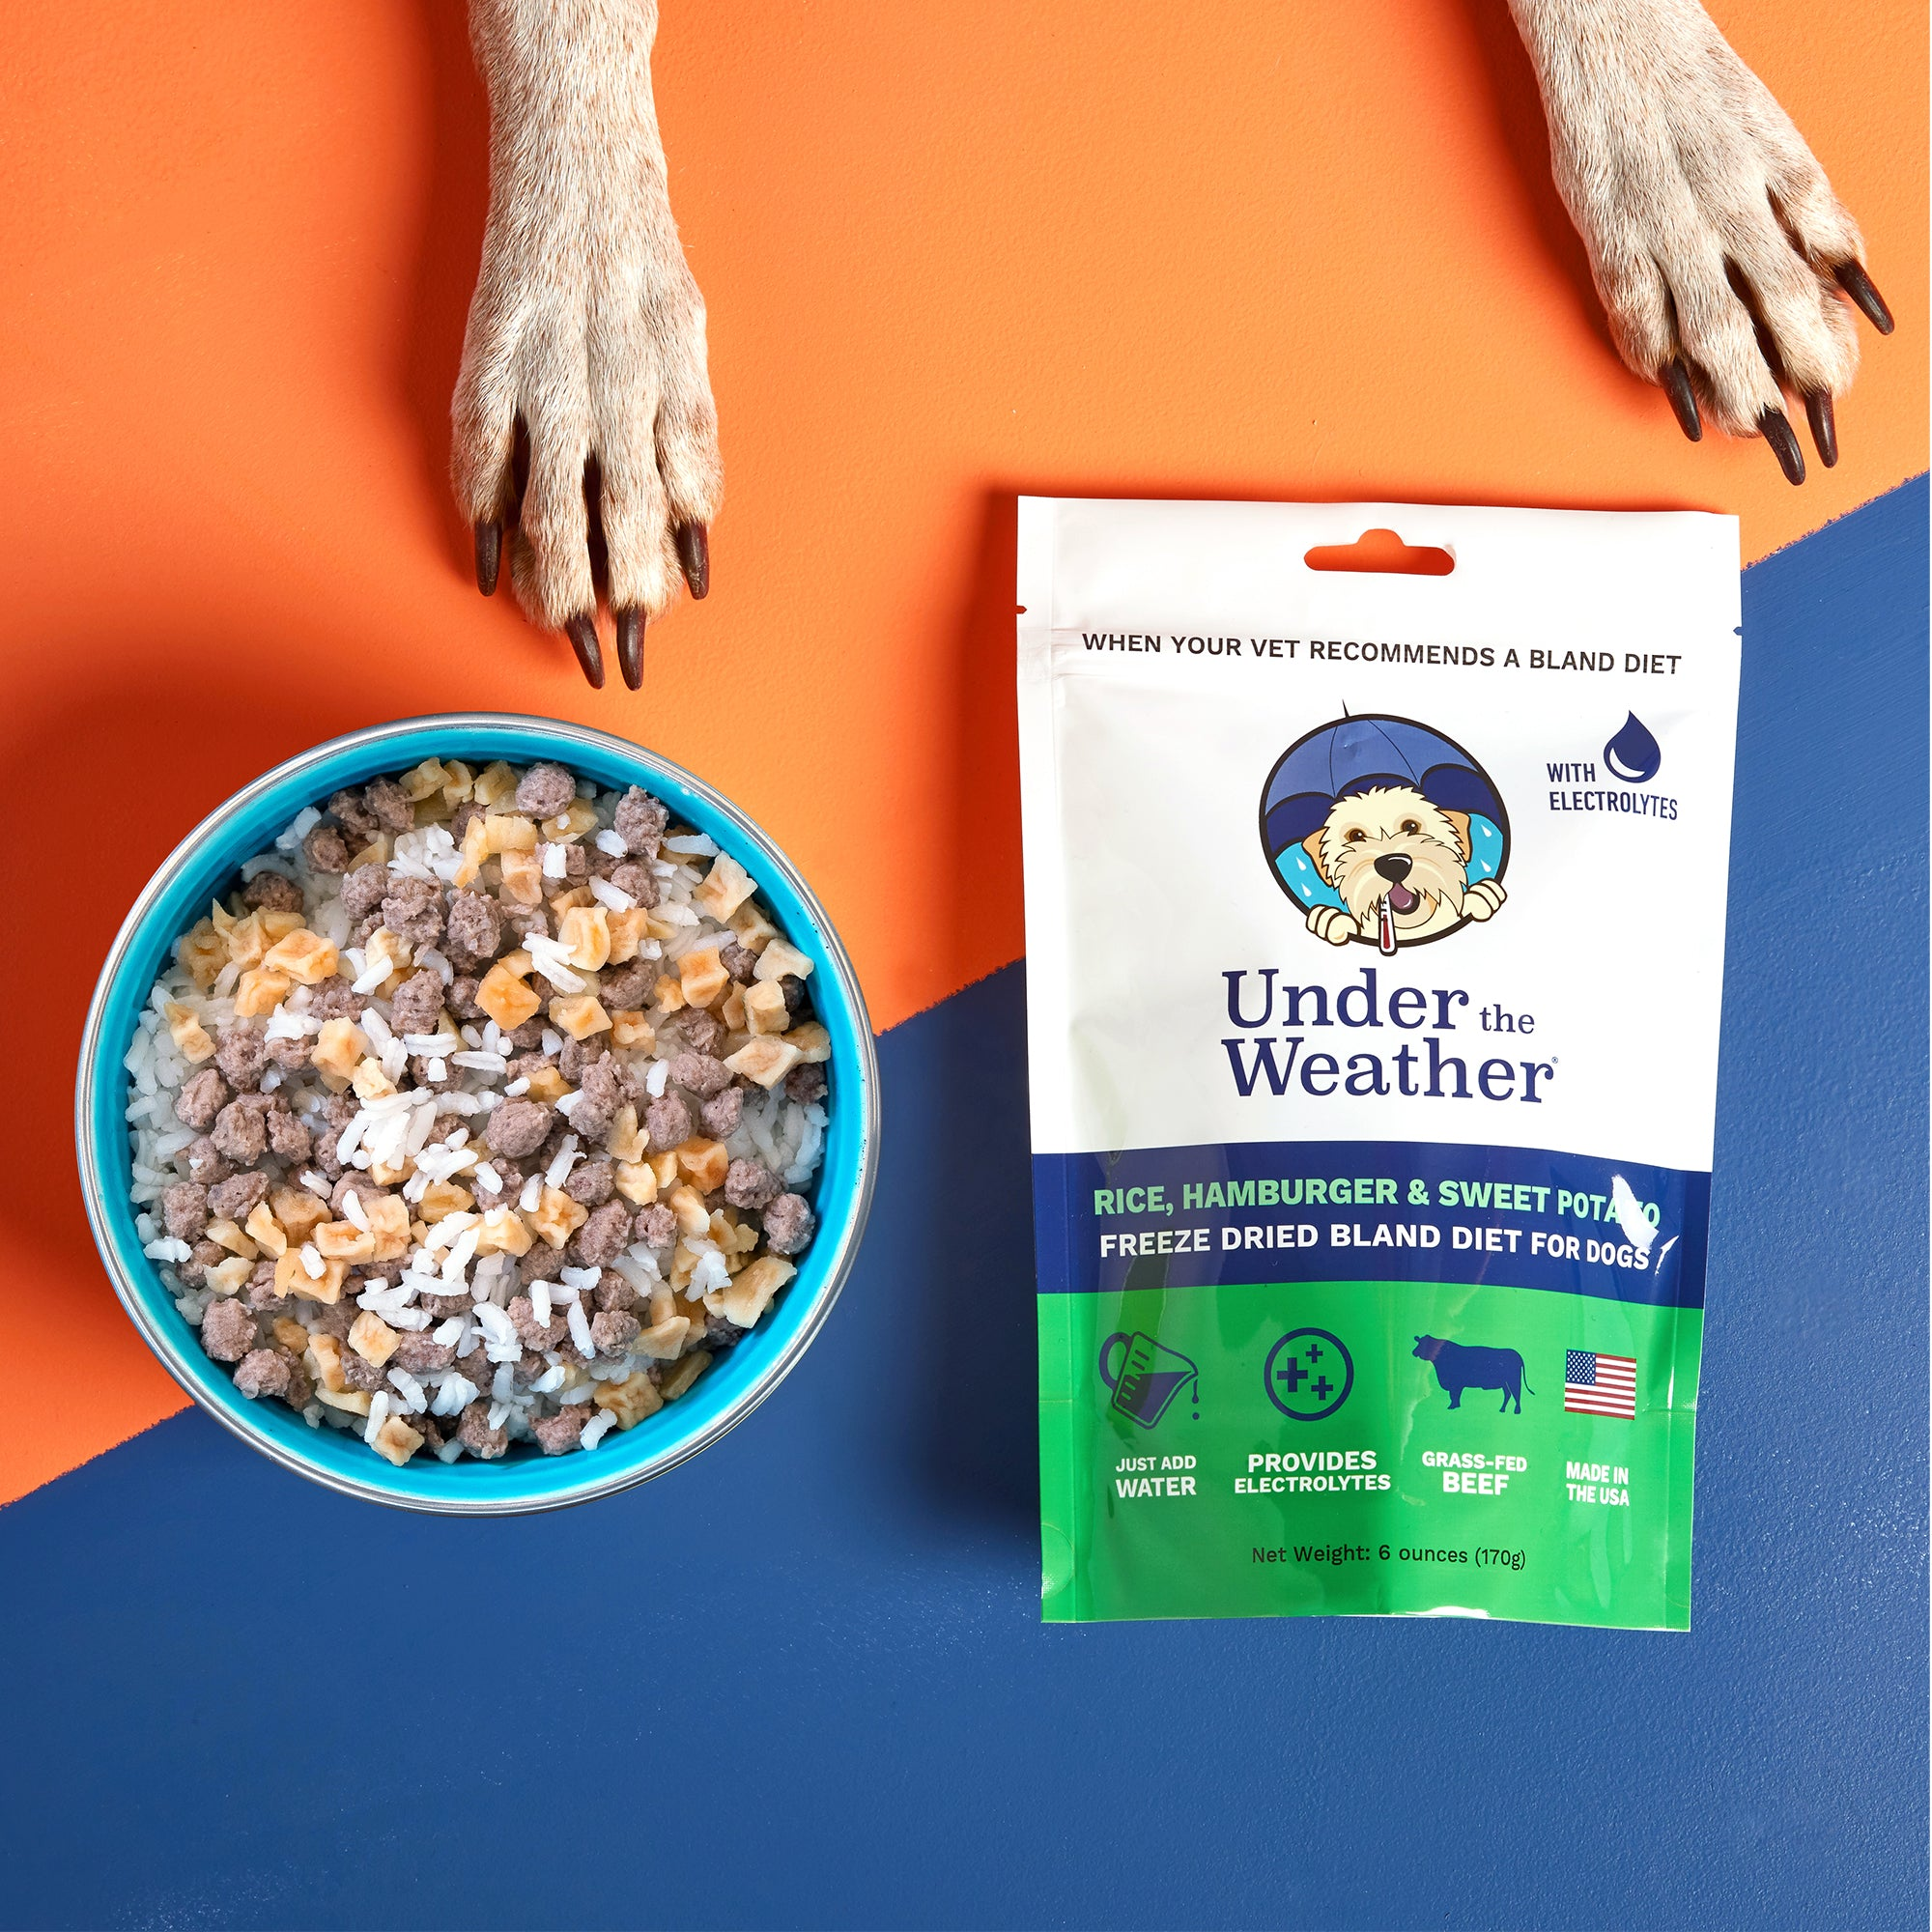 Hamburger, Rice, & Sweet Potato Bland Diet For Dogs